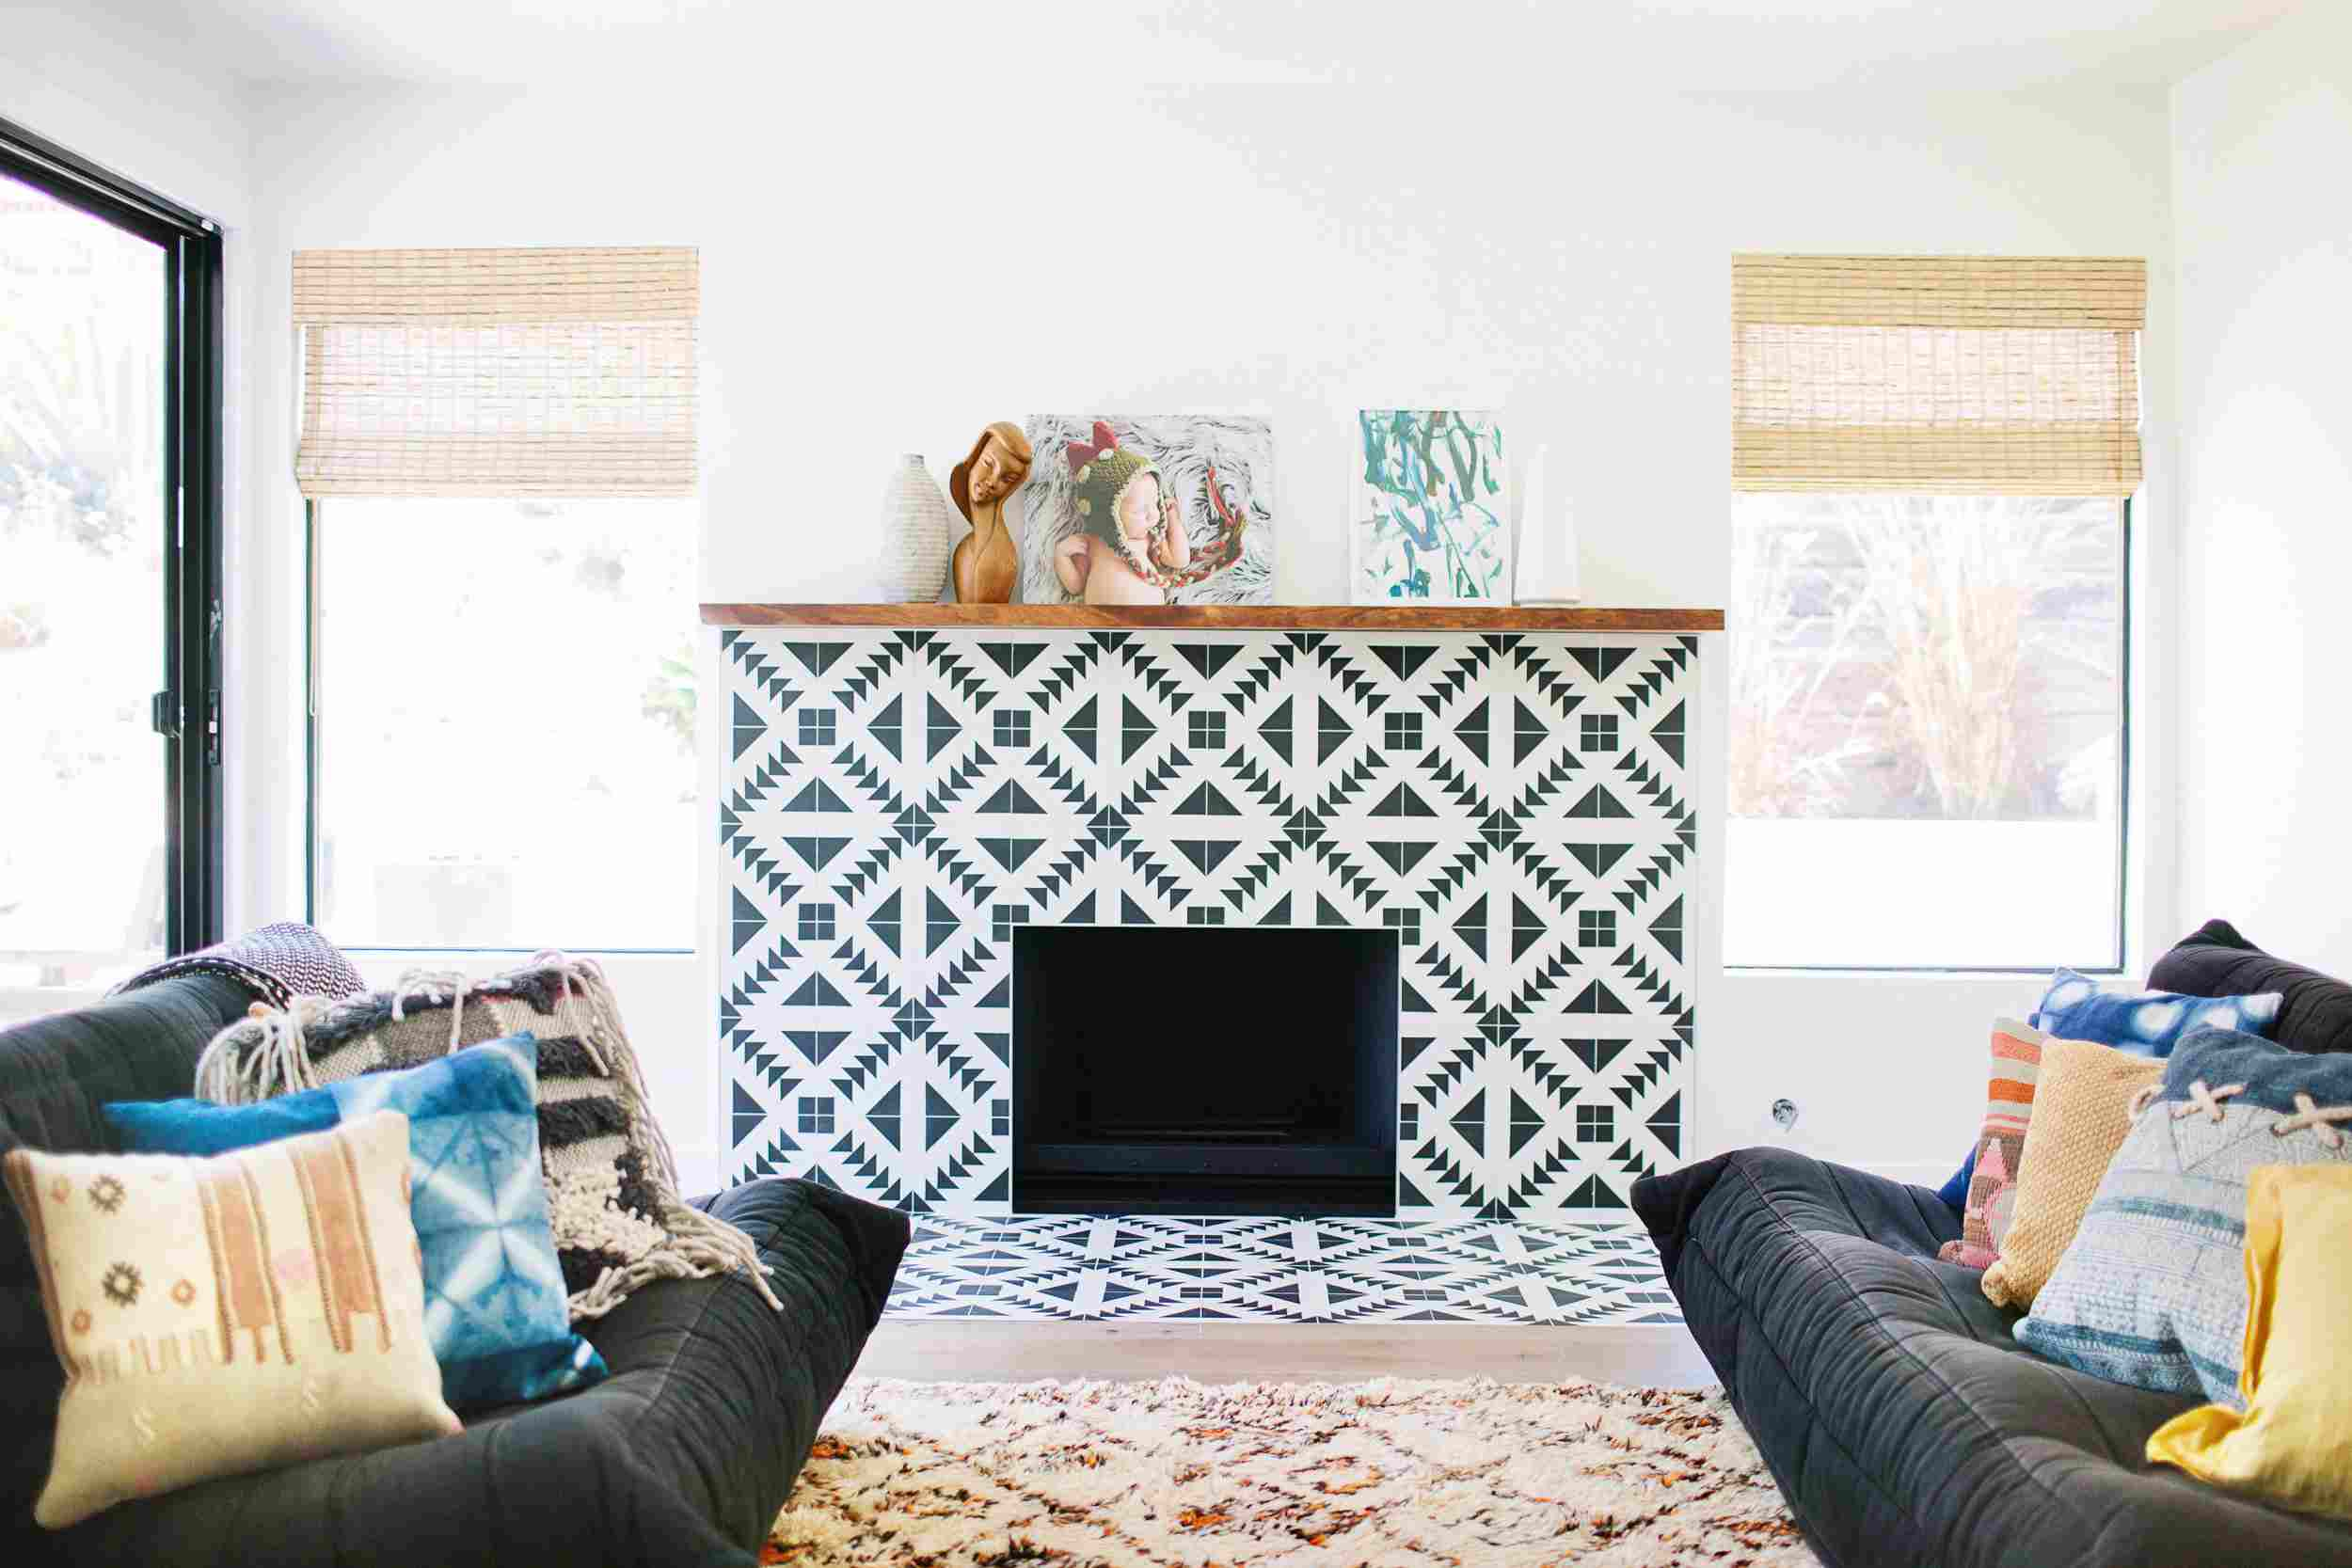 veneer fireplace plus surrounds ideas cozy images and decorations stone for warm tile surround natural